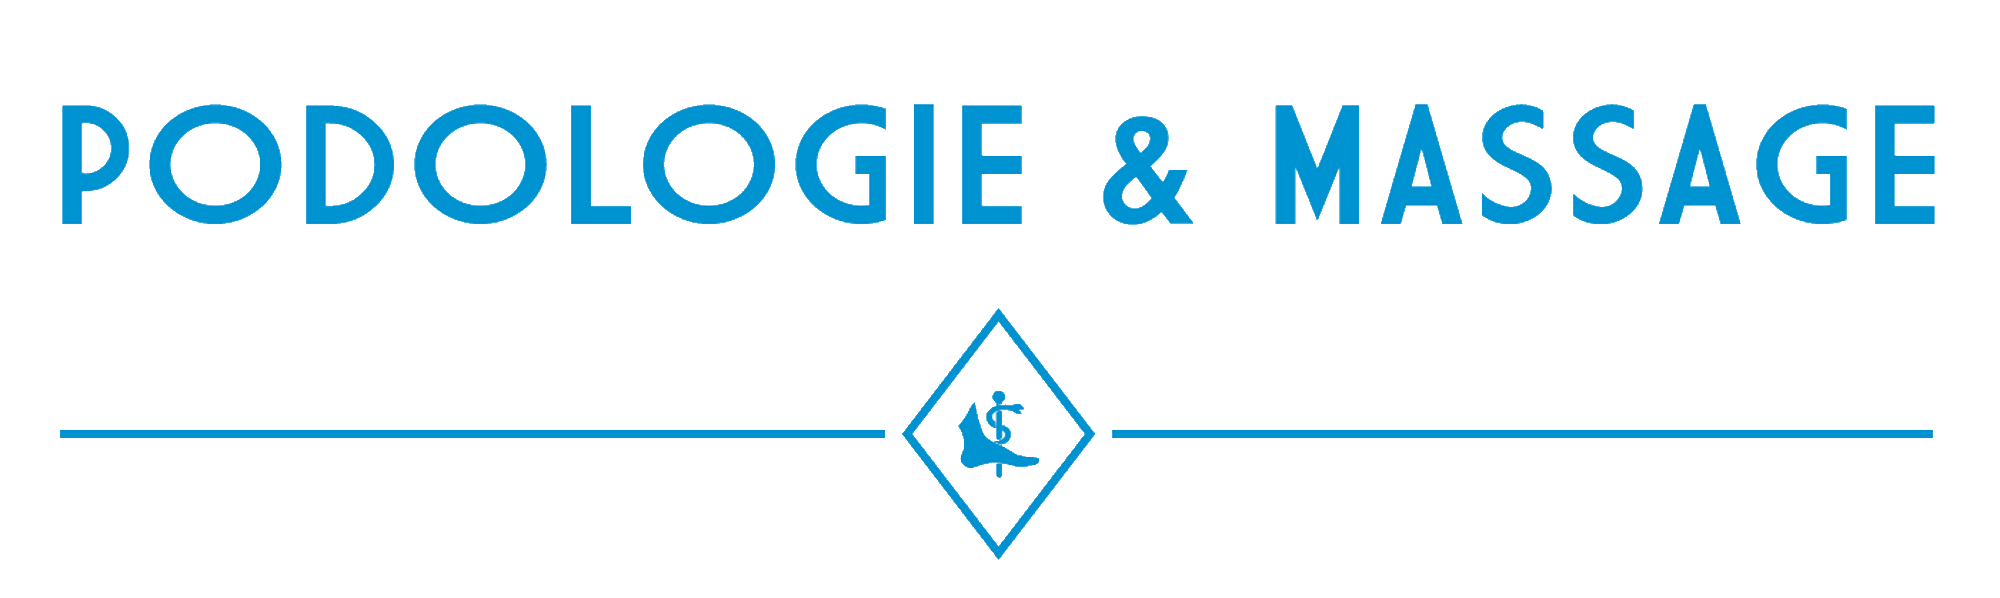 Podologie & Massage